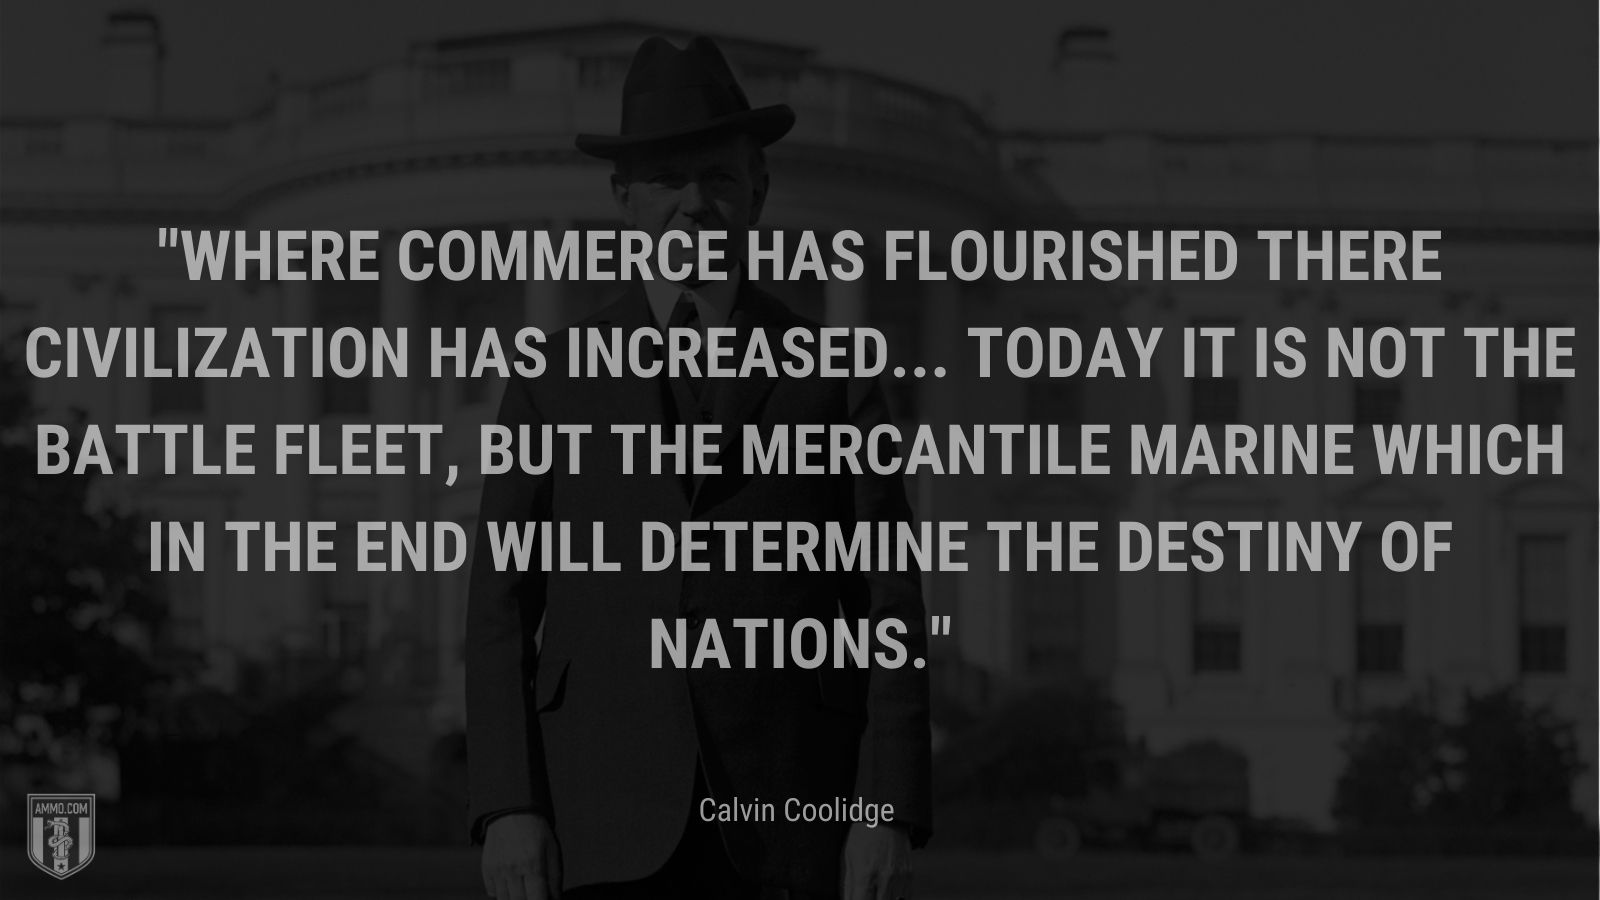 """""""Where commerce has flourished there civilization has increased... Today it is not the battle fleet, but the mercantile marine which in the end will determine the destiny of nations."""" - Calvin Coolidge"""